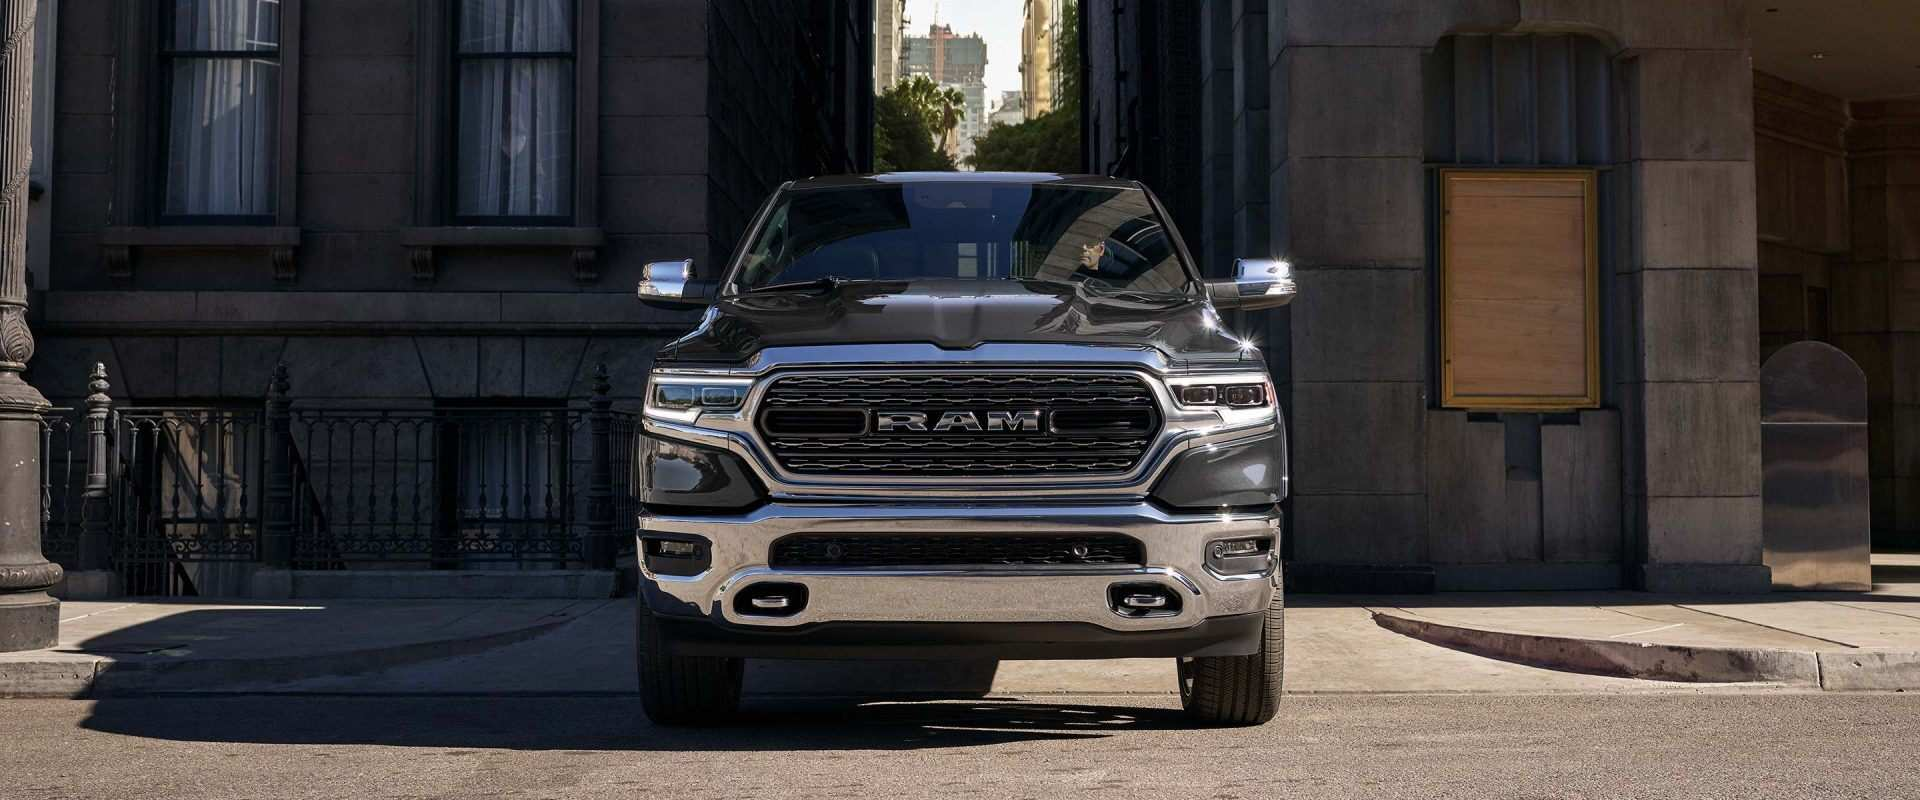 43 New 2019 Dodge Ram Accessories Review And Price Pricing by 2019 Dodge Ram Accessories Review And Price